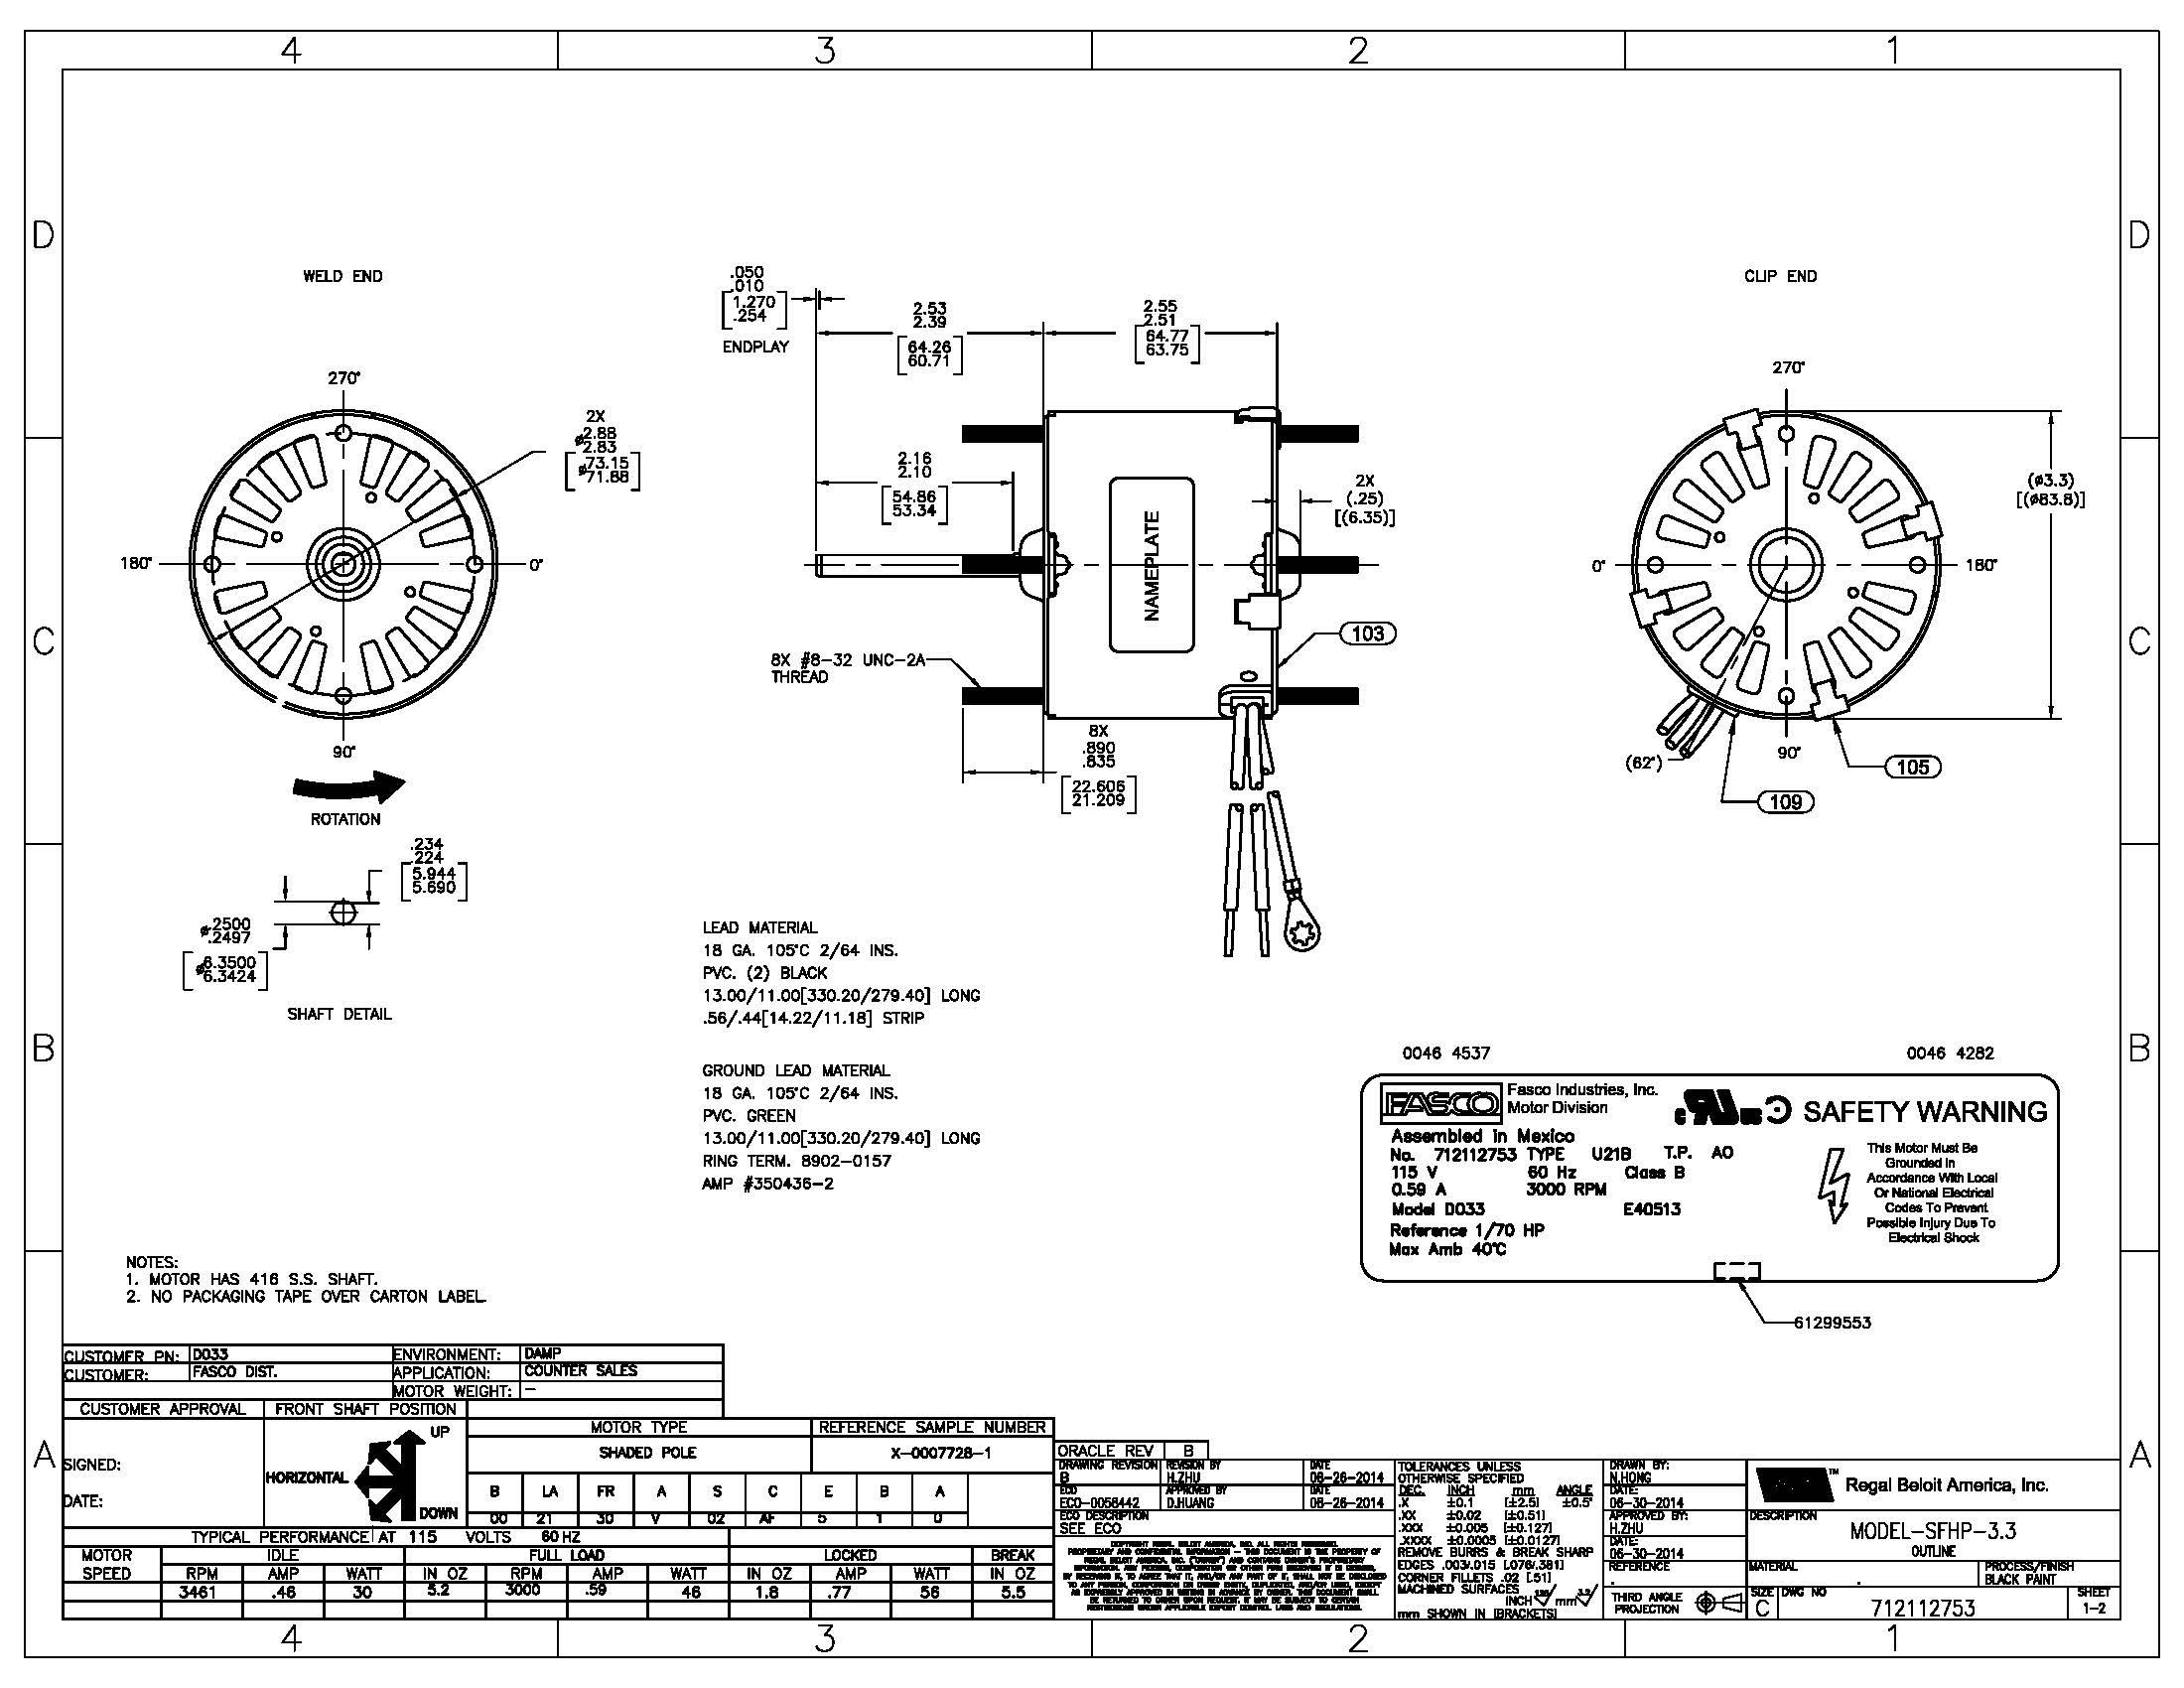 motor control center wiring diagram bmw e30 ecu square d sample